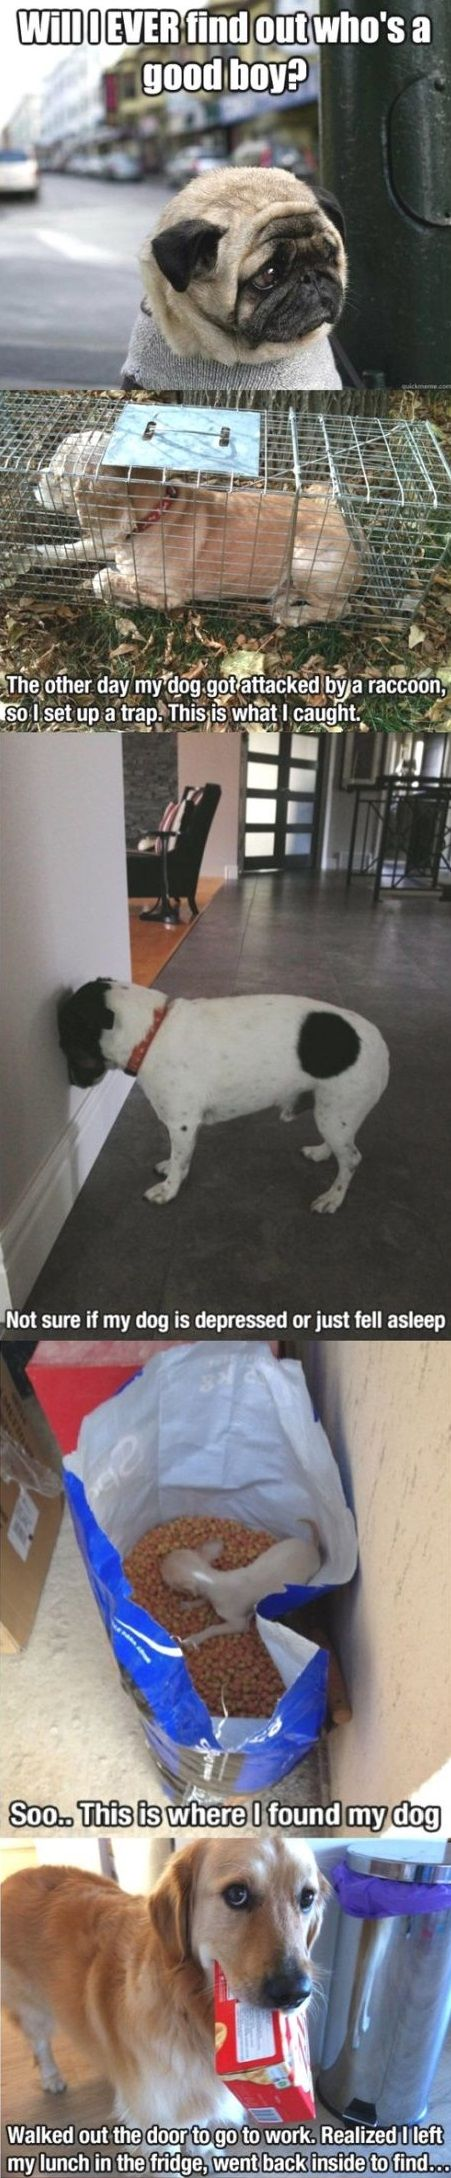 Are These Cute or Funny Dog Images? Maybe They are Both!